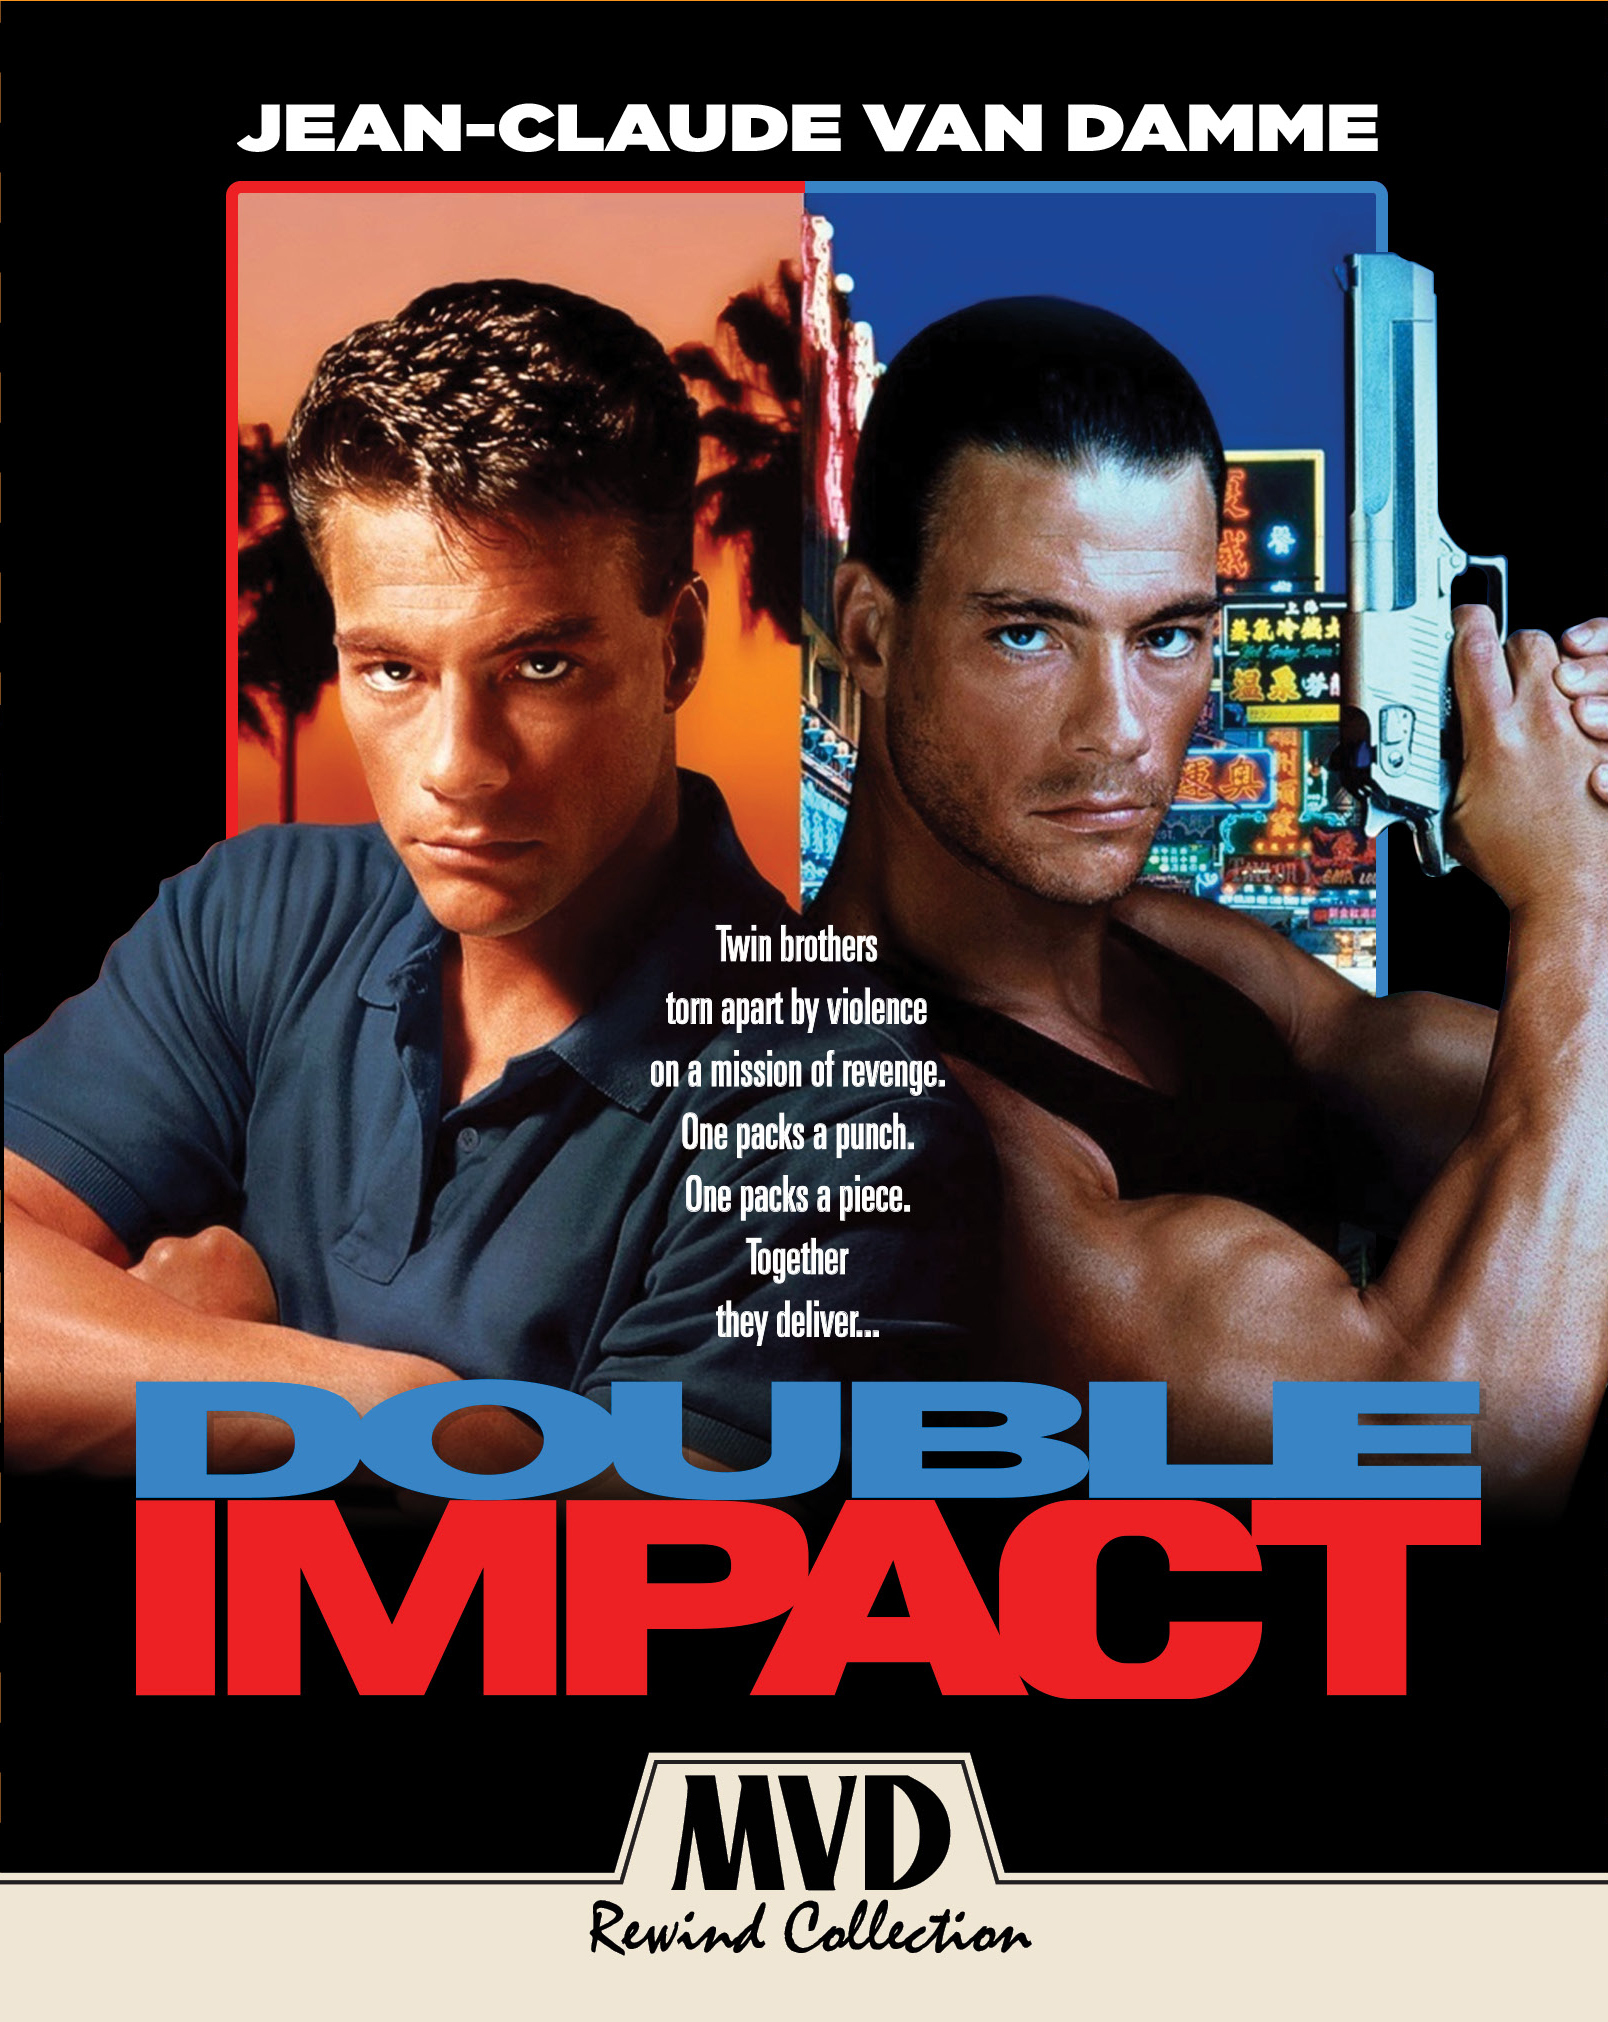 Double Impact (MVD Rewind Collection)(Blu-ray)(Region A)